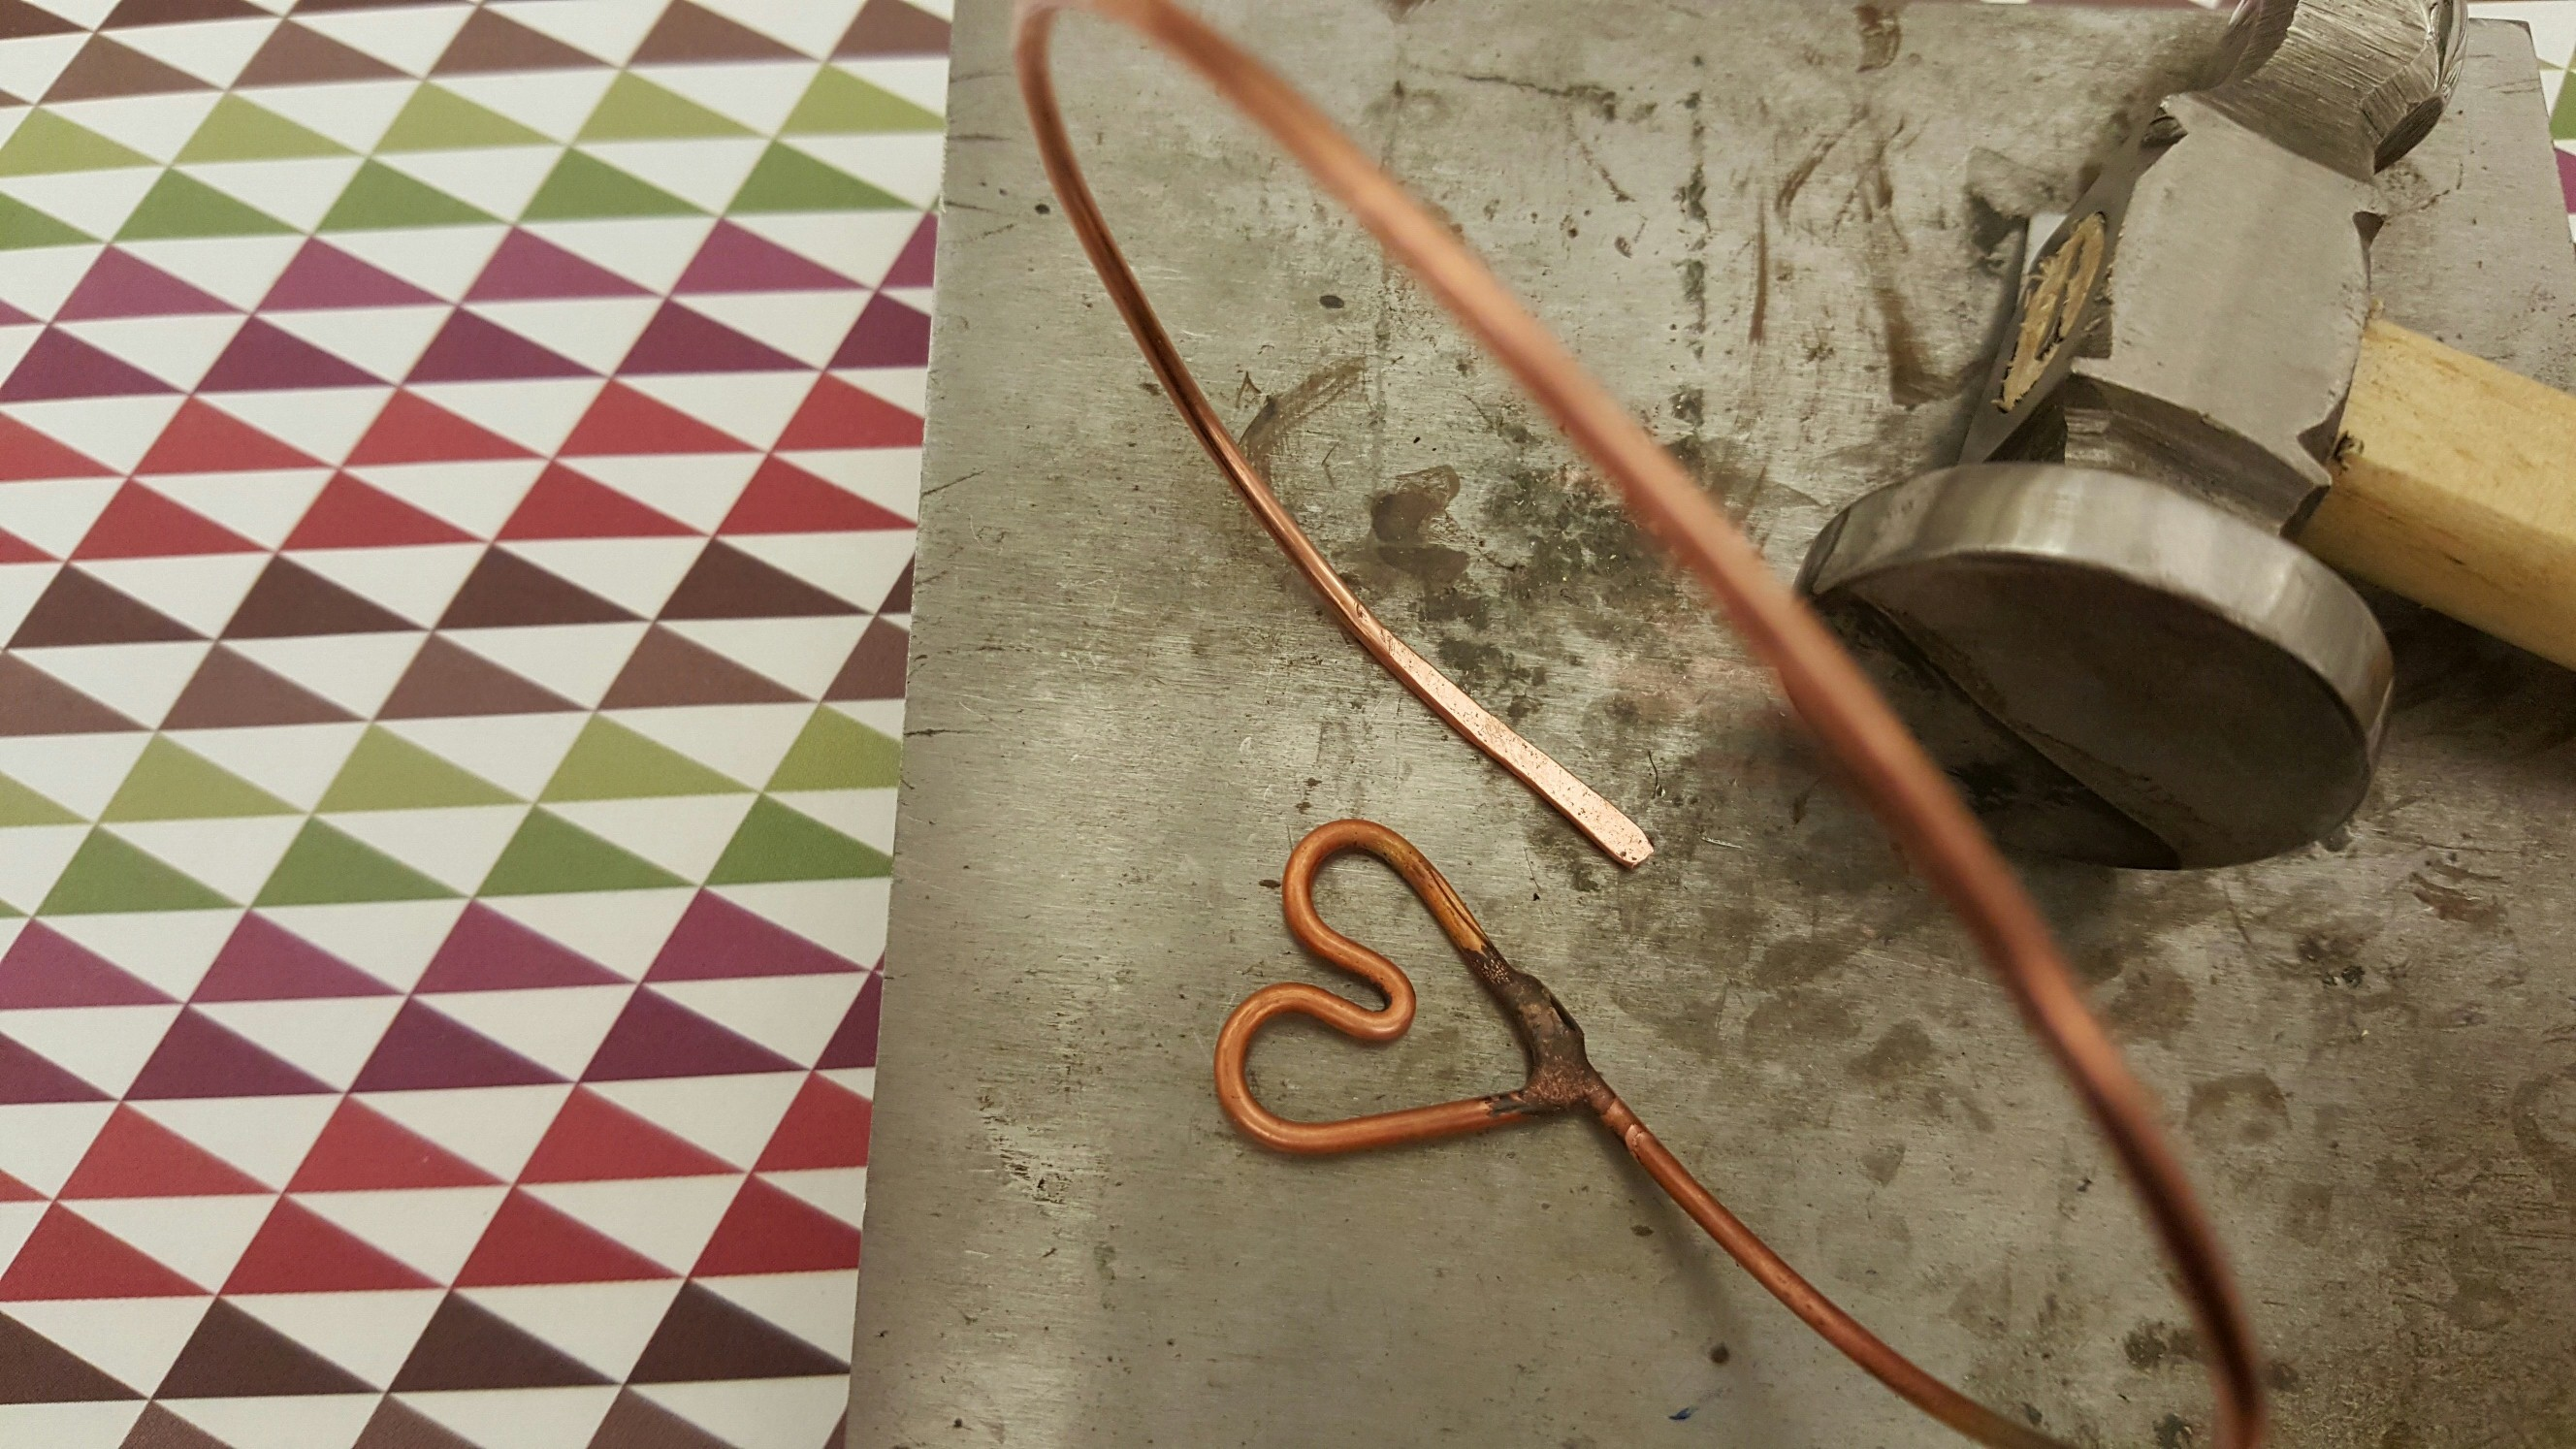 Flatten and harden the end of the wire to form a hook